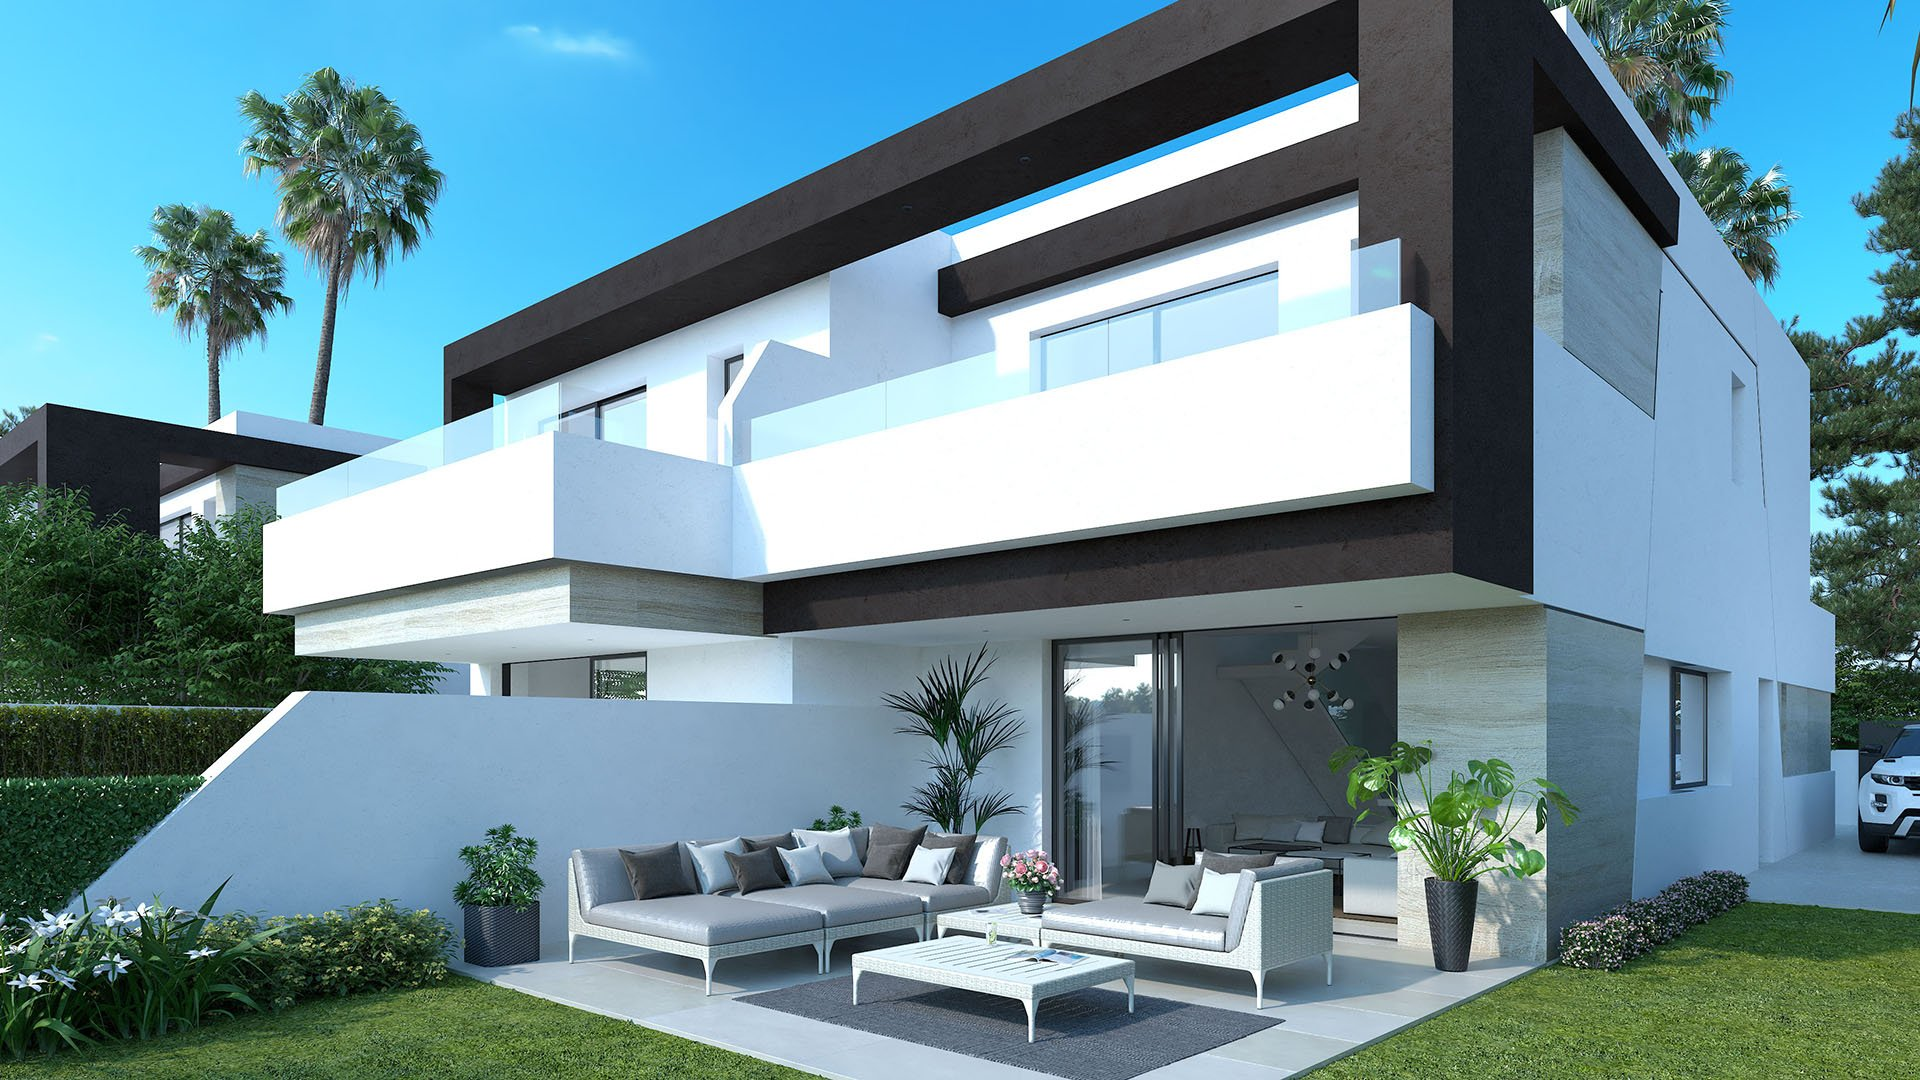 Oasis 22: Perfectly situated semi-detached villas on the New Gold Mile